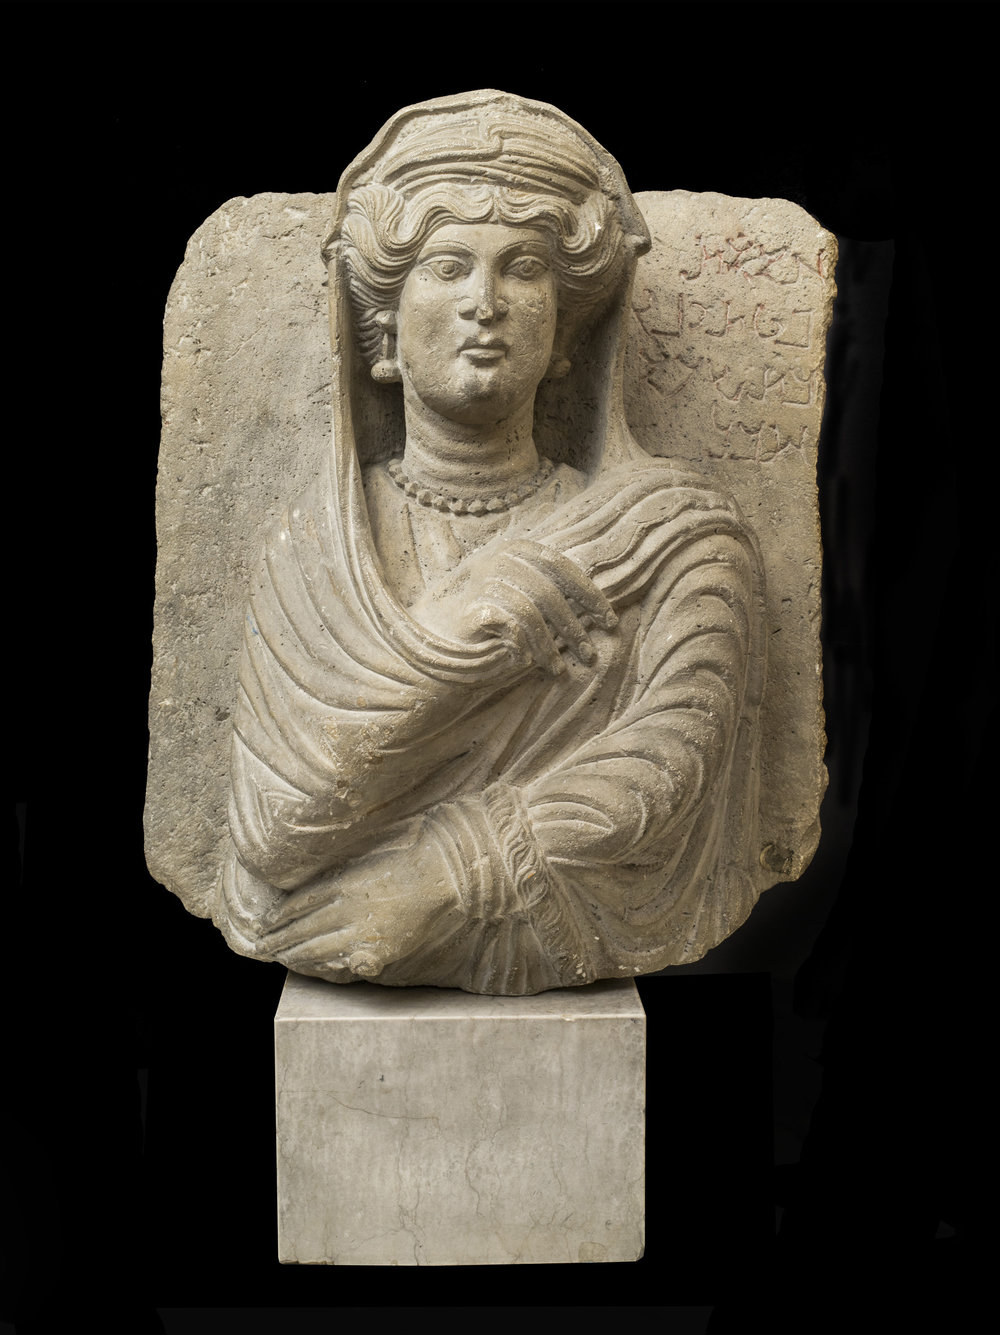 A Palmyrene Stele of a Woman, 200-220 AD.